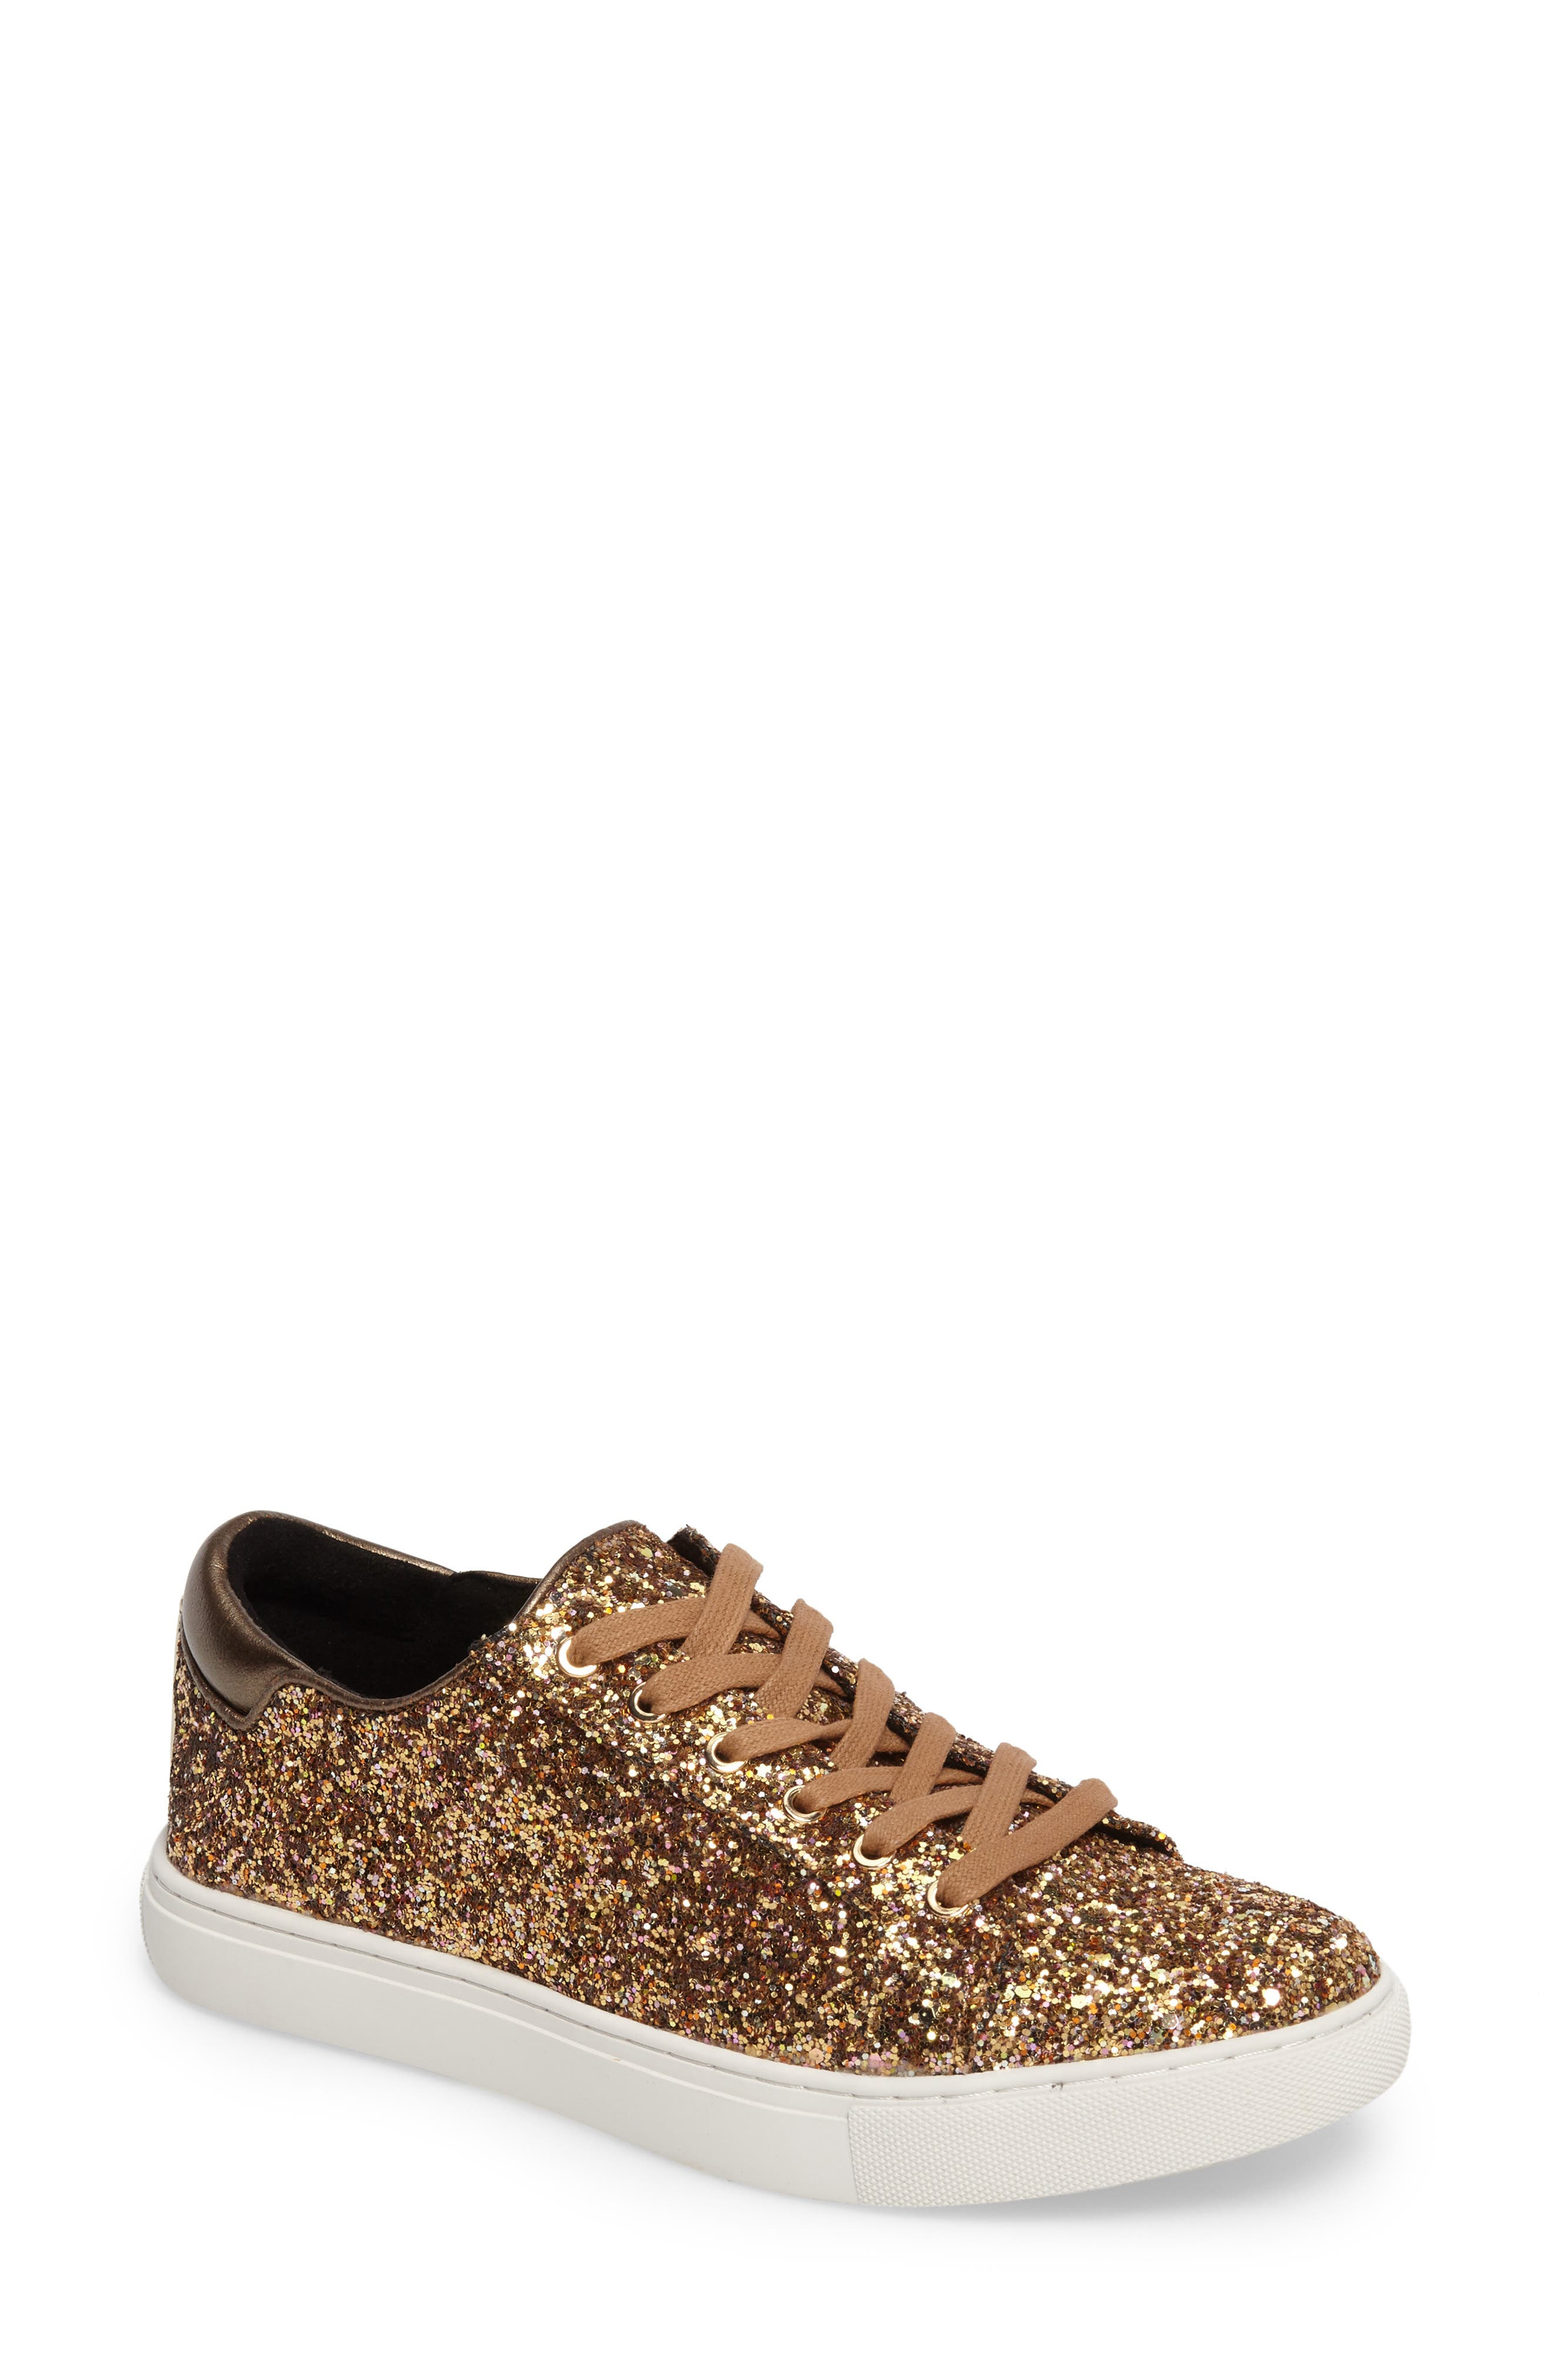 Alternate Image 1 Selected - Kenneth Cole New York Kam Techni-Cole Sneaker (Women)